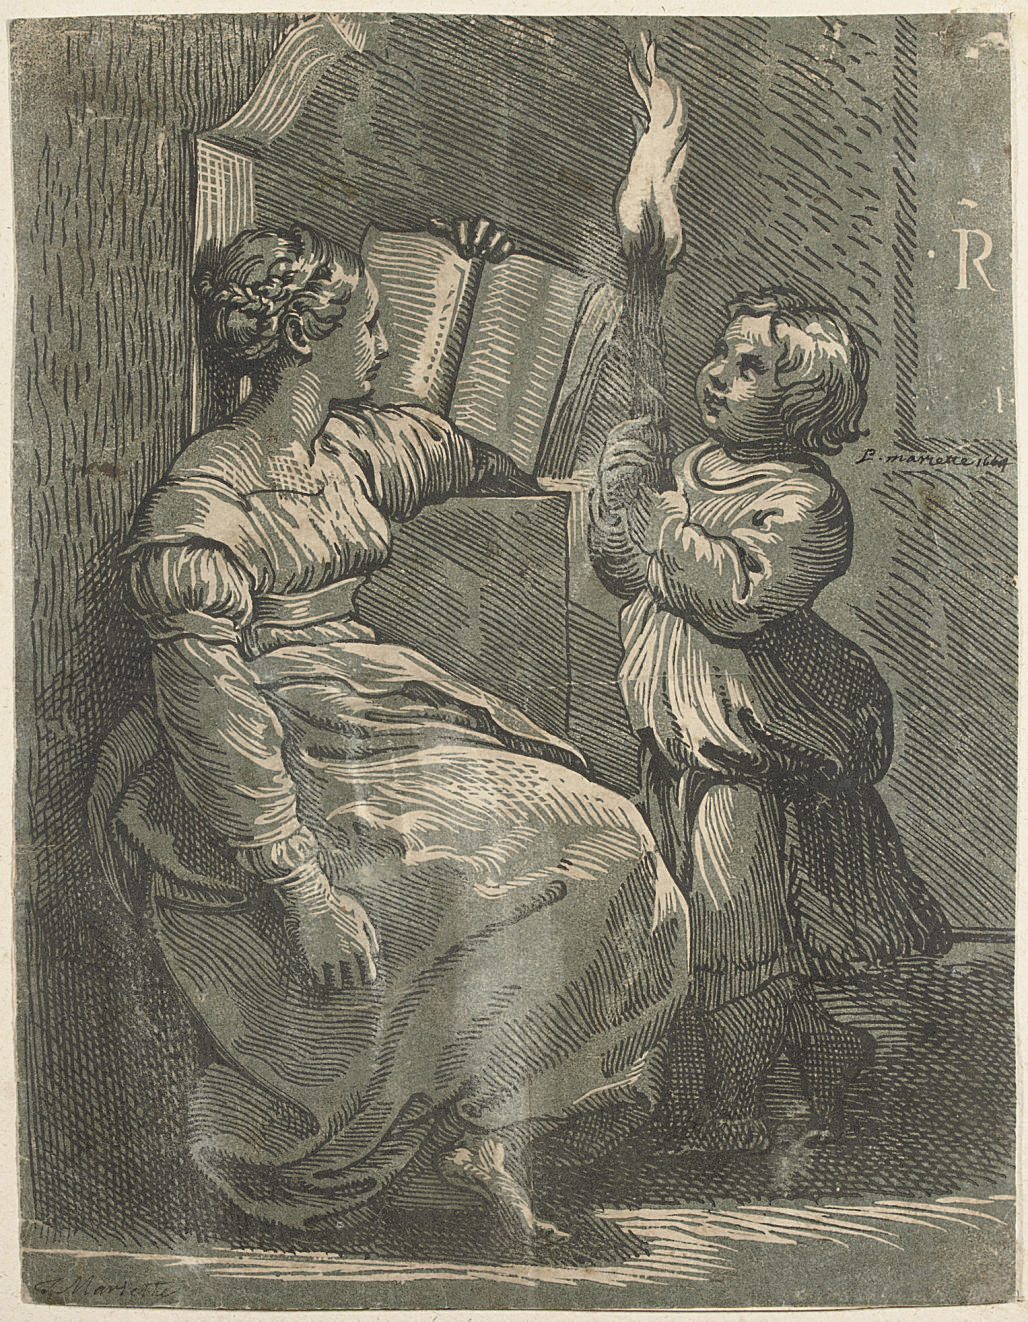 A Sybil with a Child holding a Torch (B. 6; cf. Servolini 2)